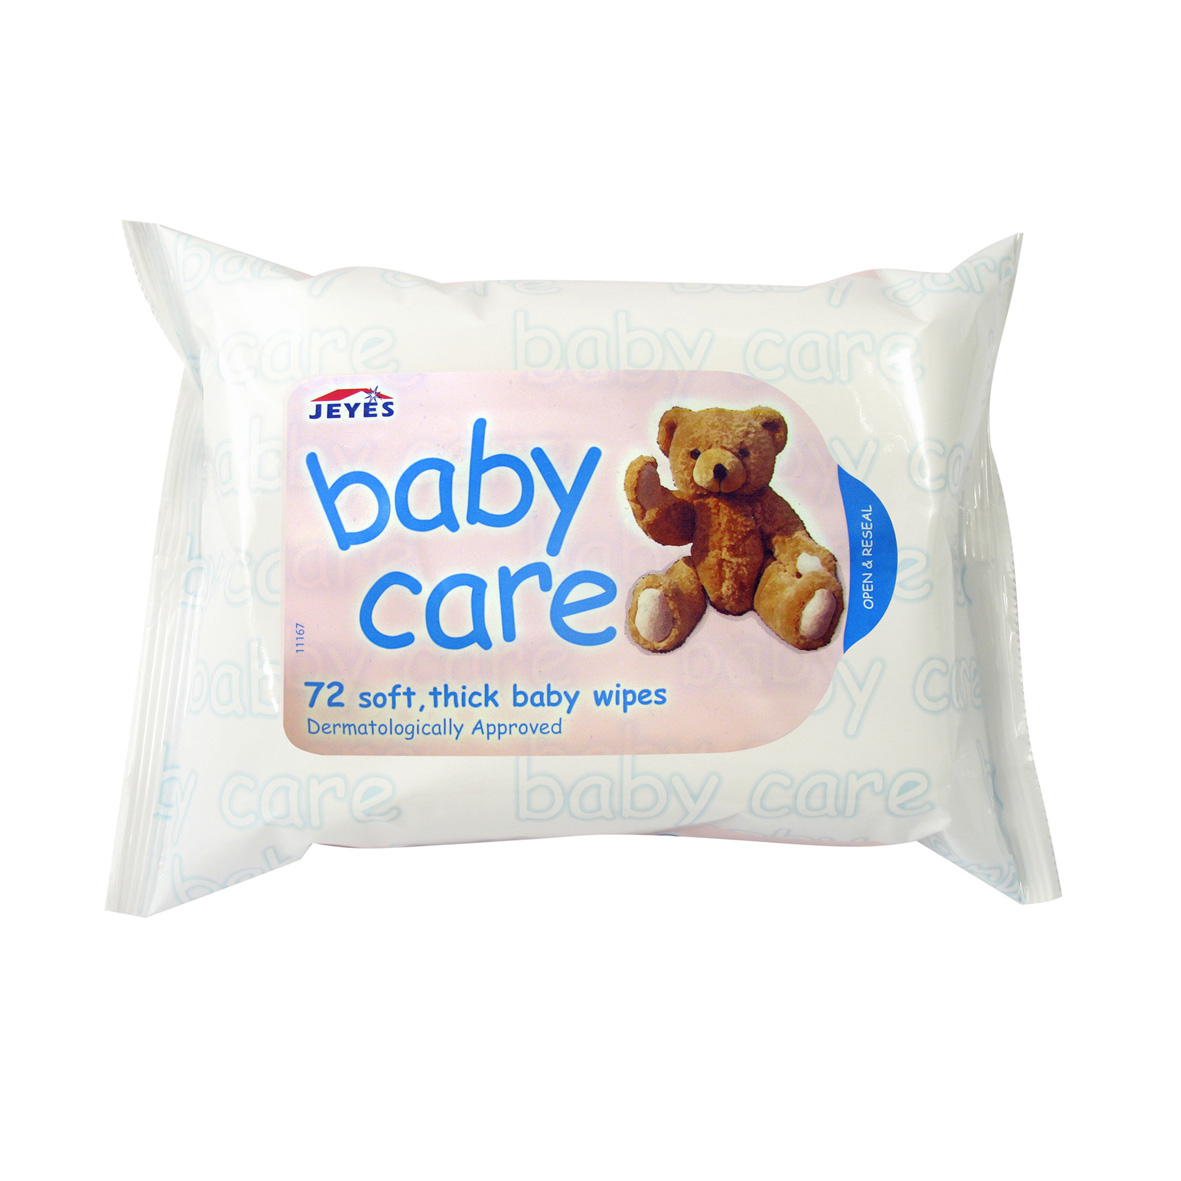 Jeyes Baby Wipes- 72 Wipes Per Pack.12 Packs Per Box